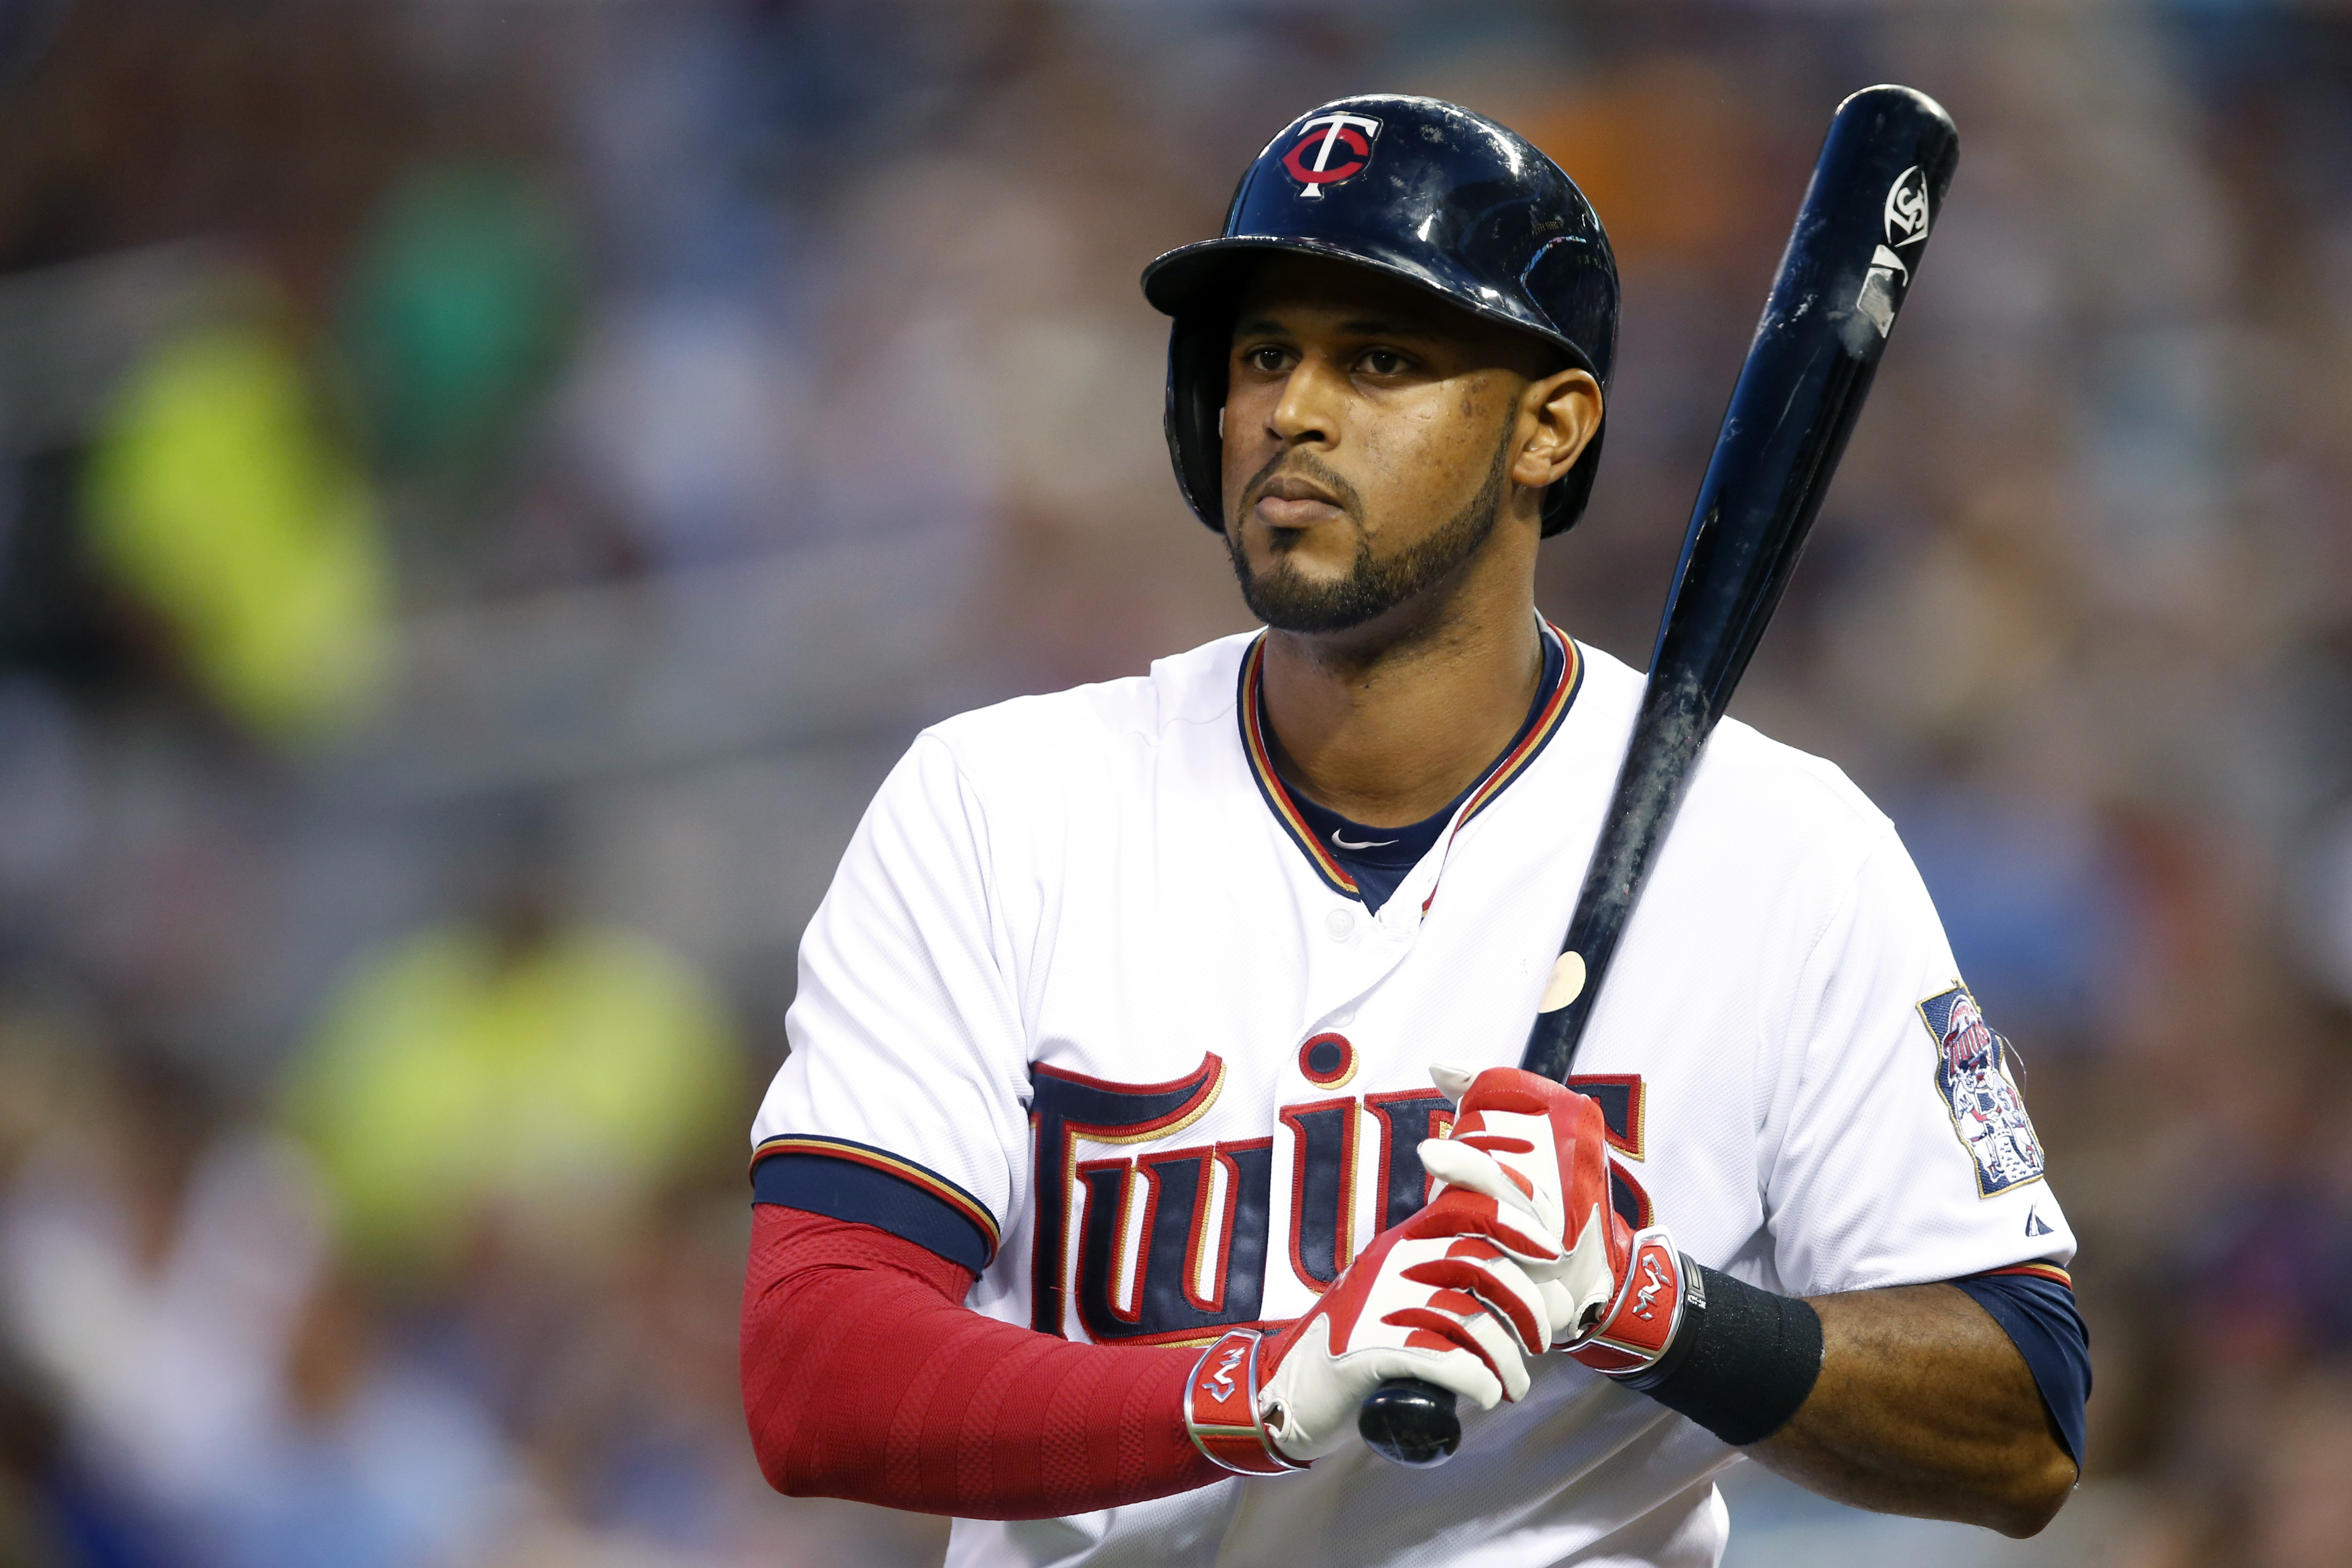 FILE - In this Sept. 15, 2015, file photo, Minnesota Twins' Aaron Hicks is on deck in a baseball game against the Detroit Tigers, in Minneapolis. New York Yankees general manager Brian Cashman is following through on his vow to start transforming the team